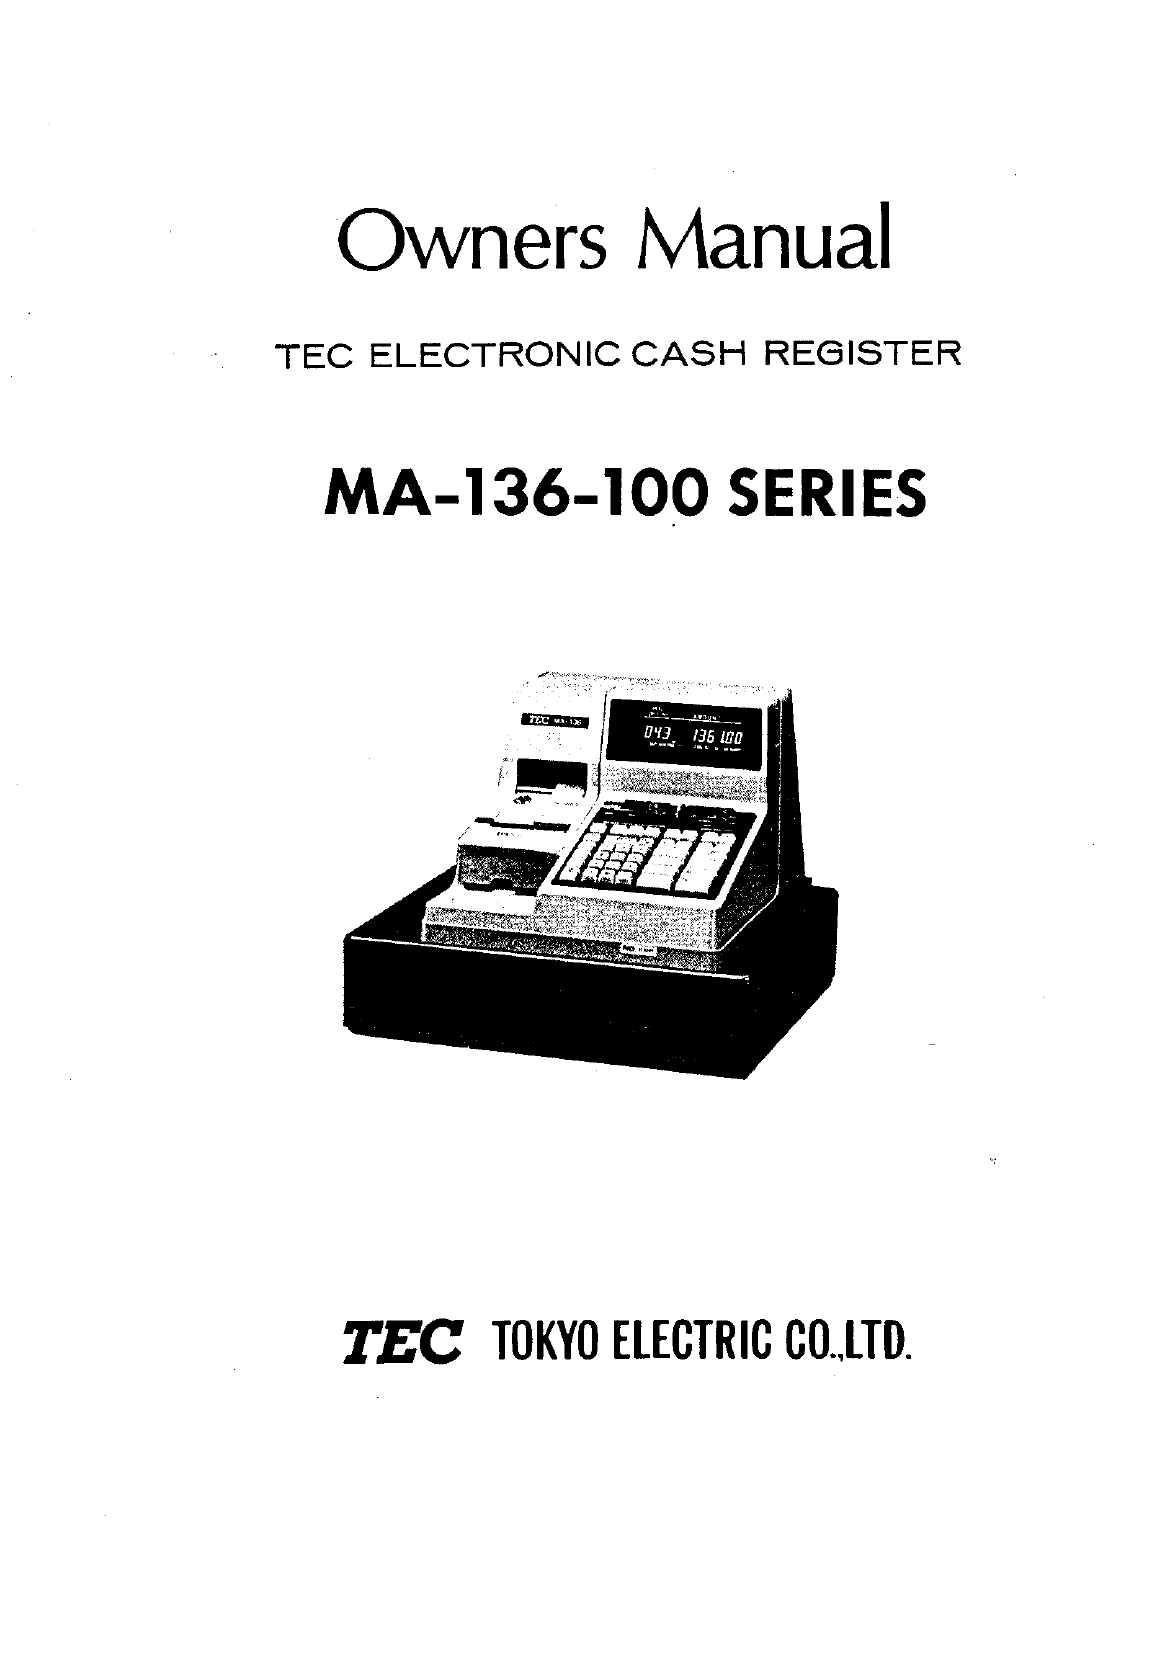 Toshiba Cash Register MA-136-100 SERIES manual